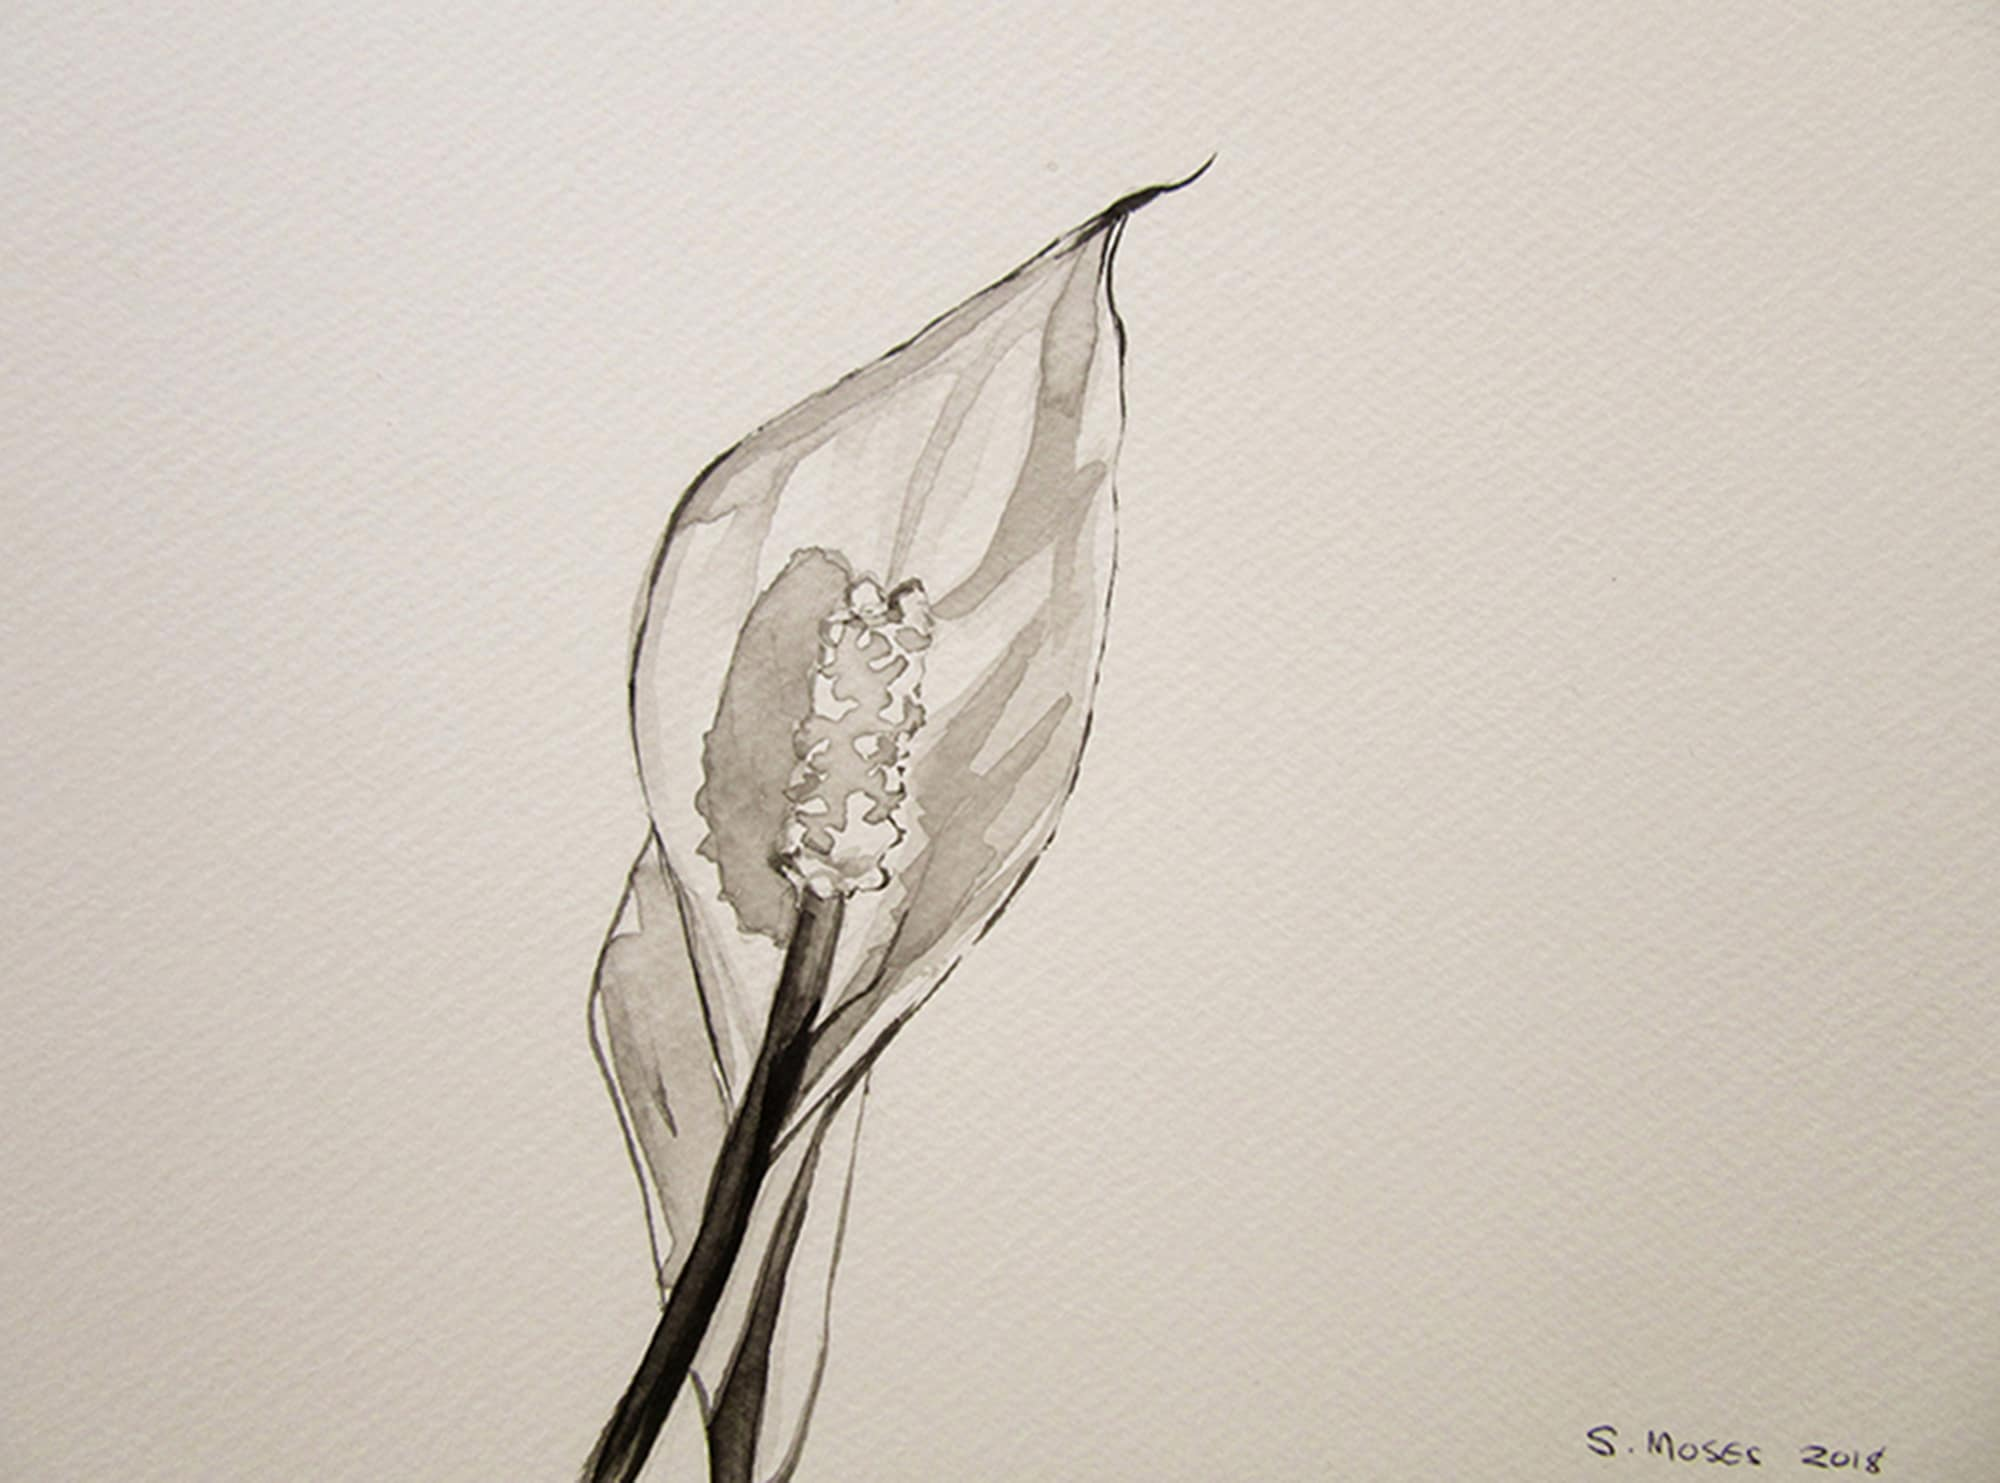 <span class=&#34;link fancybox-details-link&#34;><a href=&#34;/artists/49-sharon-moses/works/2502-sharon-moses-peace-lily-2018/&#34;>View Detail Page</a></span><div class=&#34;artist&#34;><strong>Sharon Moses</strong></div> <div class=&#34;title&#34;><em>Peace Lily</em>, 2018</div> <div class=&#34;medium&#34;>Ink On 300Gsm Cold Pressed Acid-Free Paper</div> <div class=&#34;dimensions&#34;>14.8cm x 21cm</div><div class=&#34;price&#34;>R500.00</div>